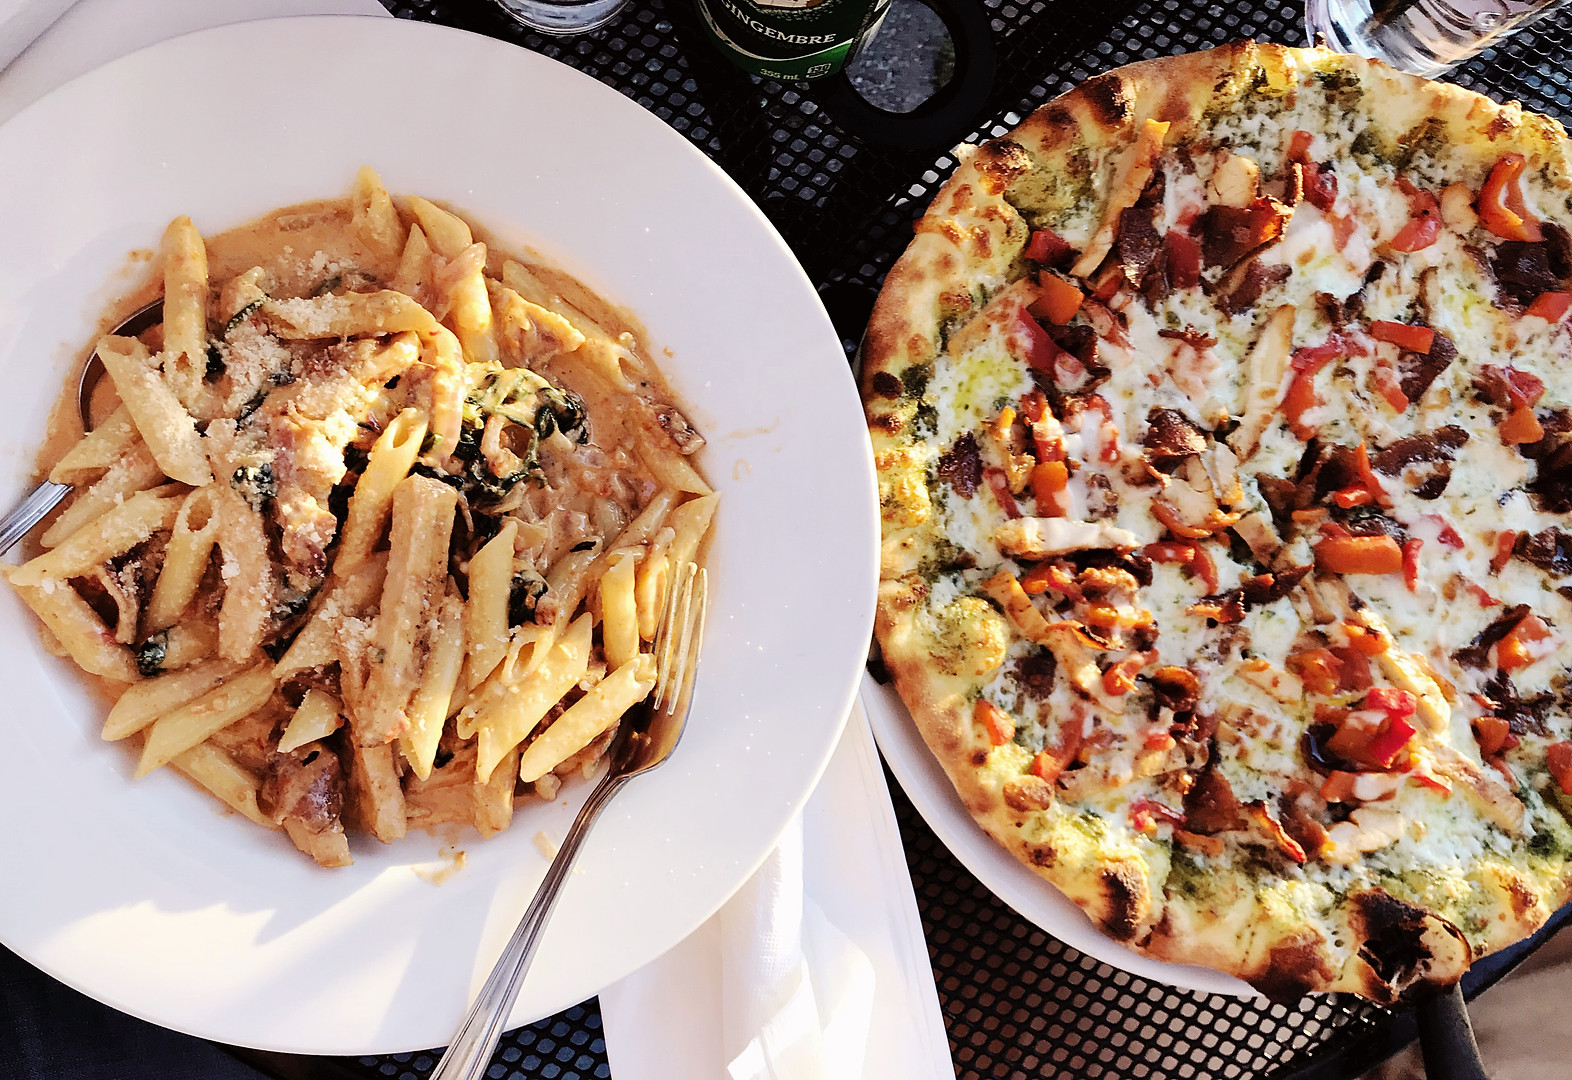 Penne pasta and pizza